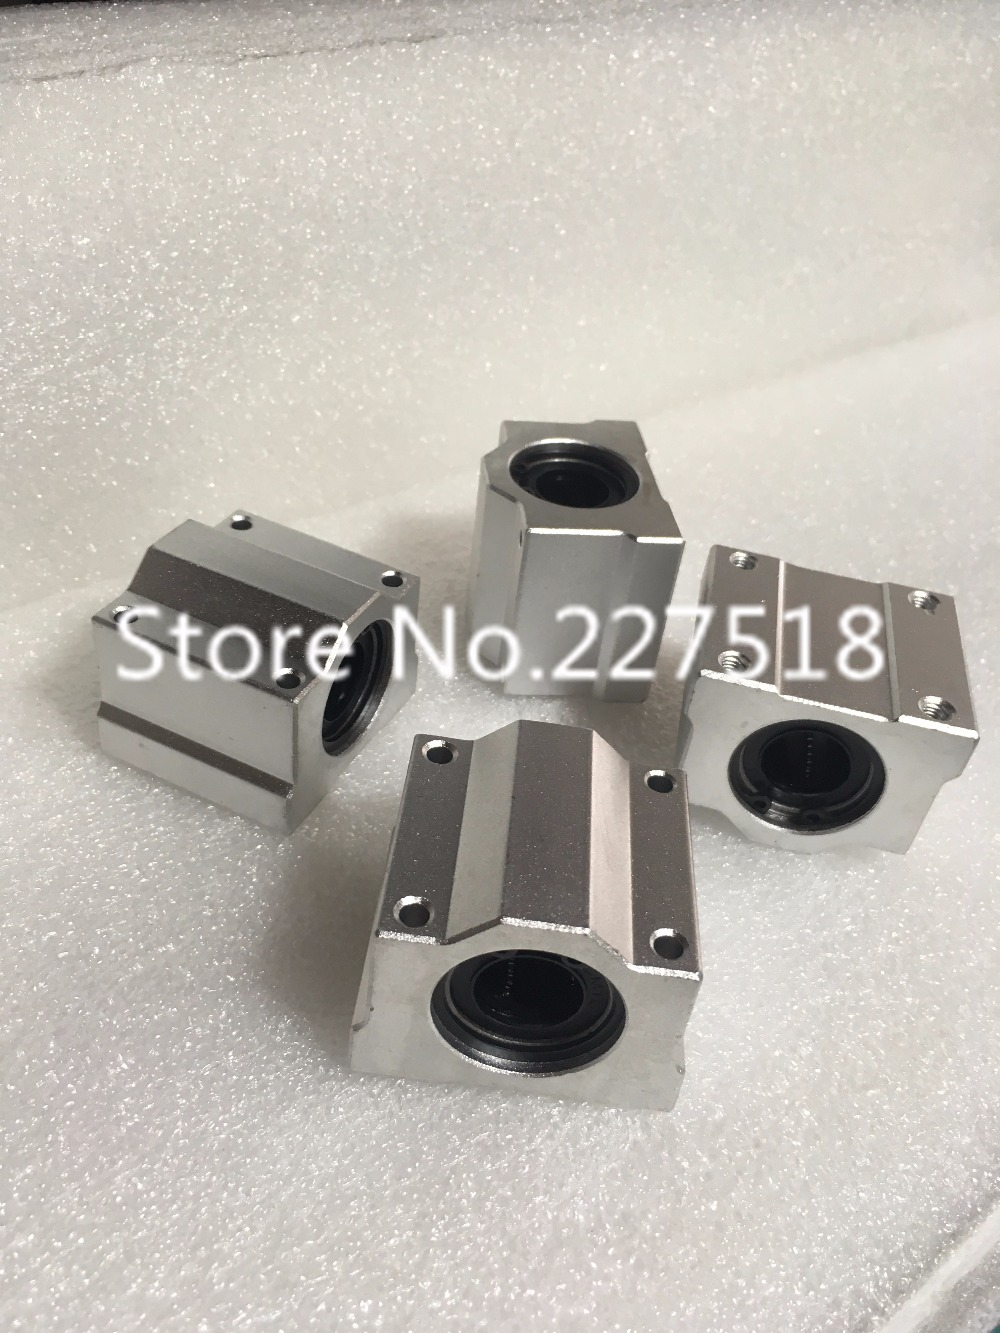 2pcs SCS30UU 30mm linear guide Linear axis ball bearing block with LM30UU bush, pillow block linear unit for CNC part free shipping 2pcs lot lm30uu 30mm 30mmx45mmx64mm linear ball bearing bush bushing cnc 30x45x64mm